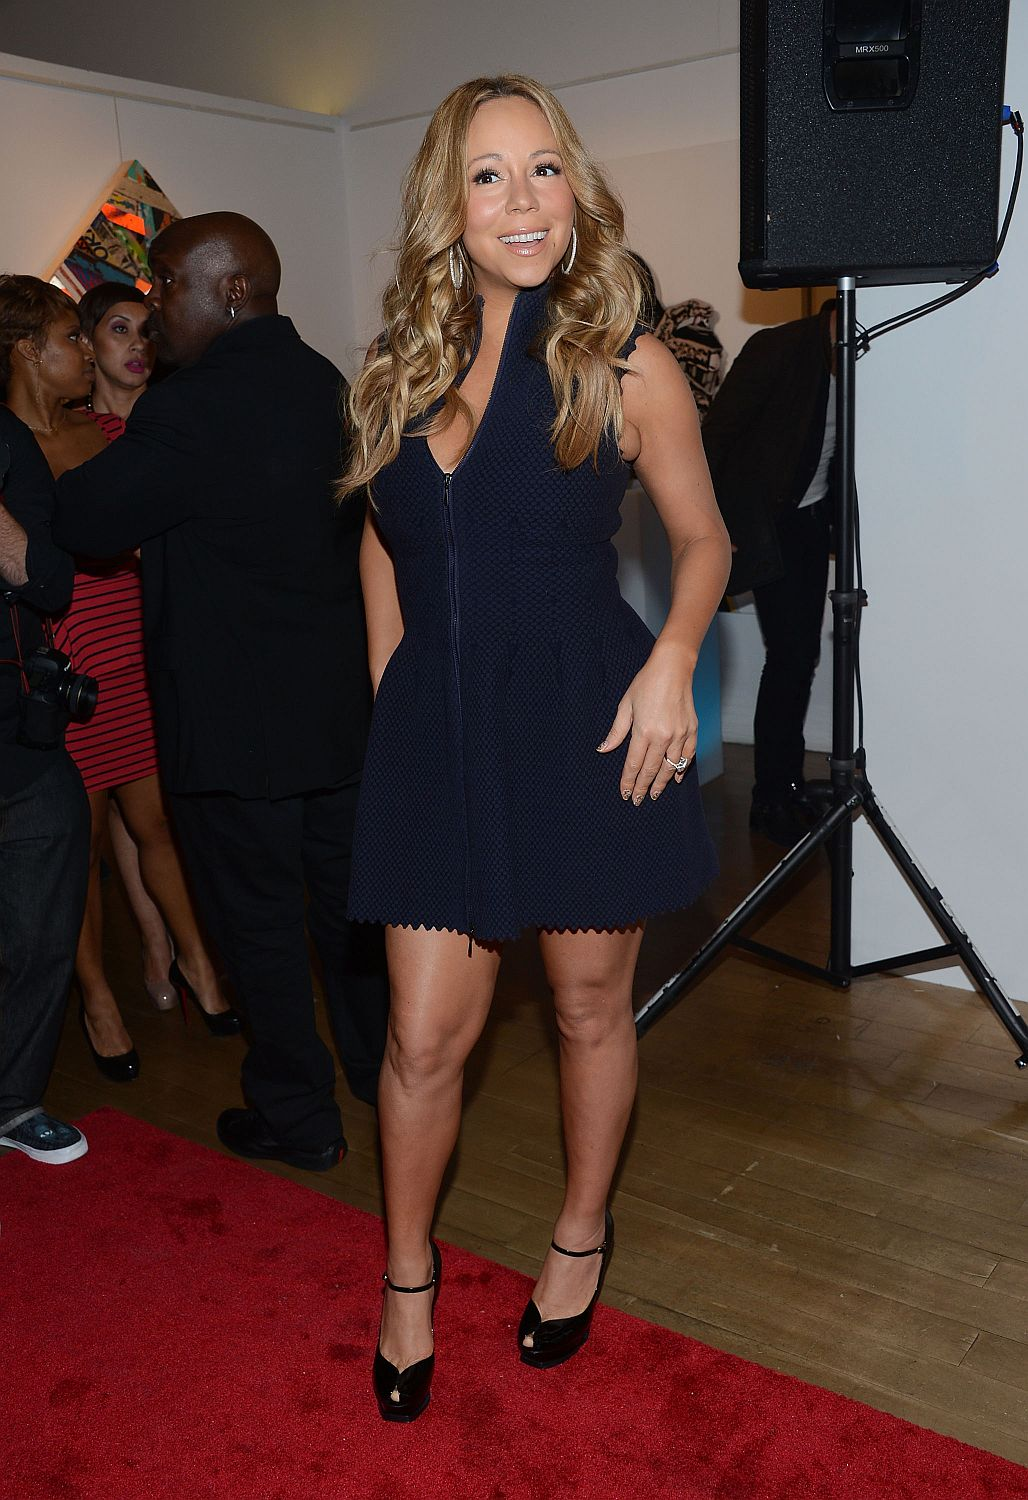 mariah 2012 Hot Shots: Mariah Carey Relights Her Diva